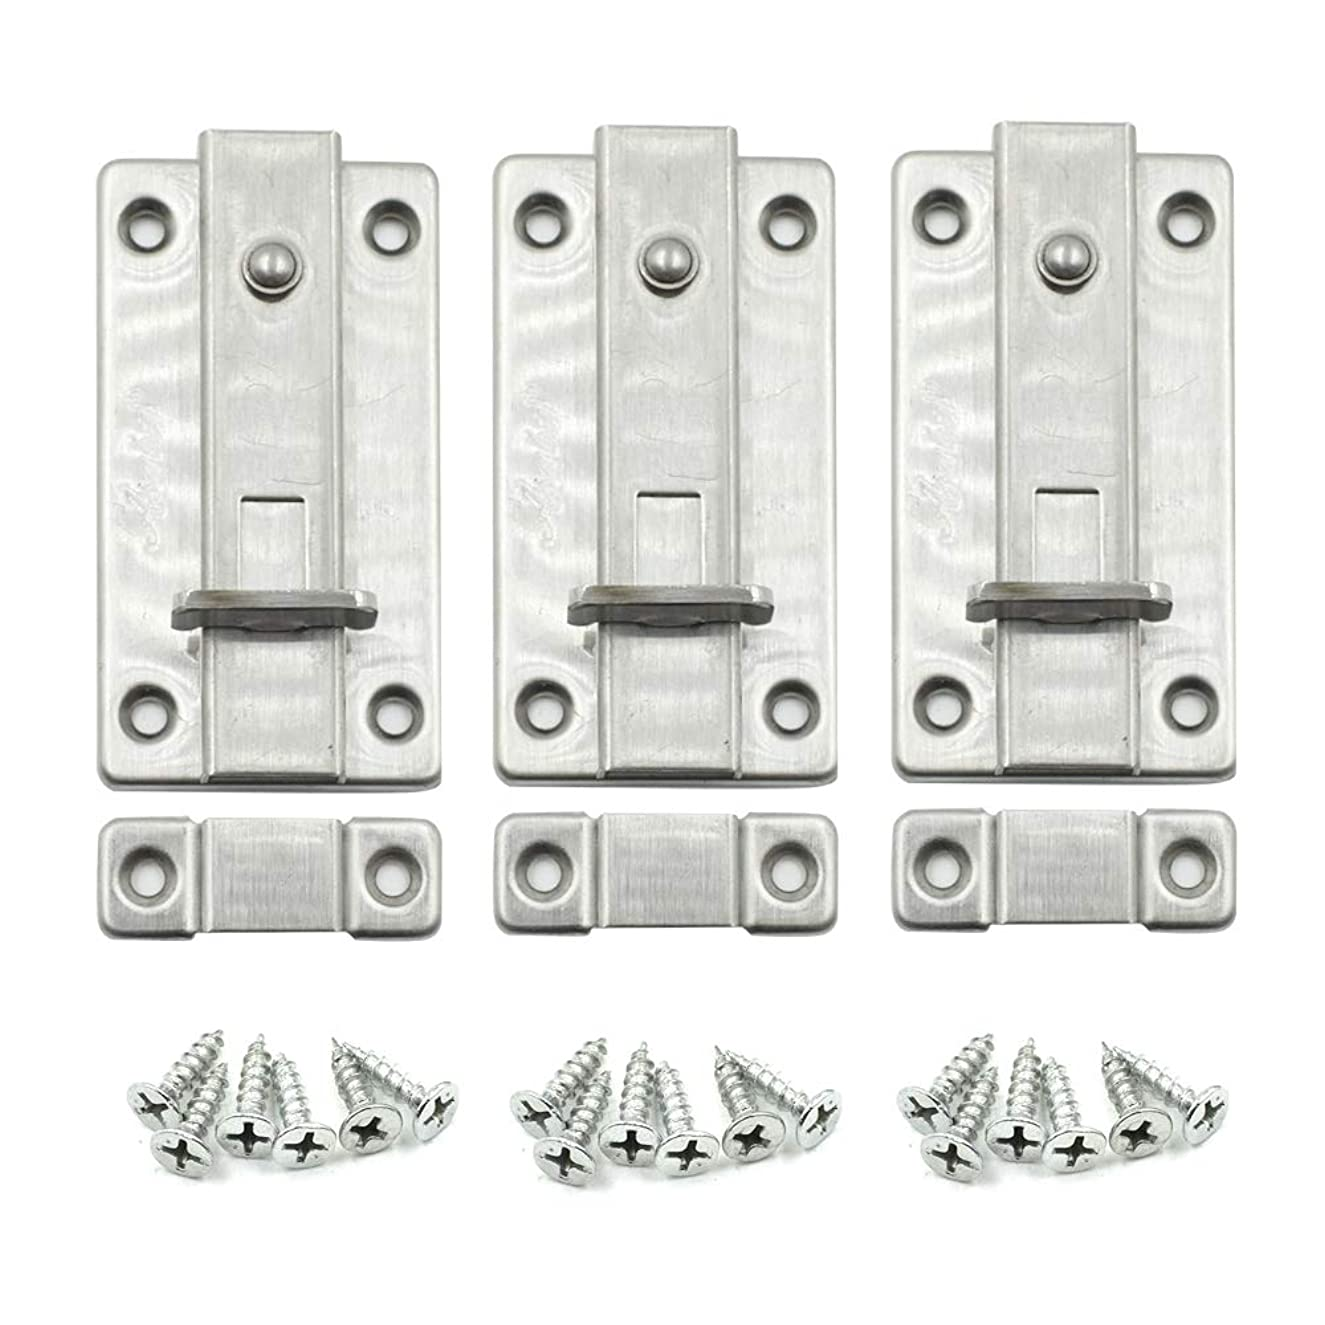 HONJIE Stainless Steel Thickened Door Latch Spring Barrel Bolt 4 Inch-3pcs